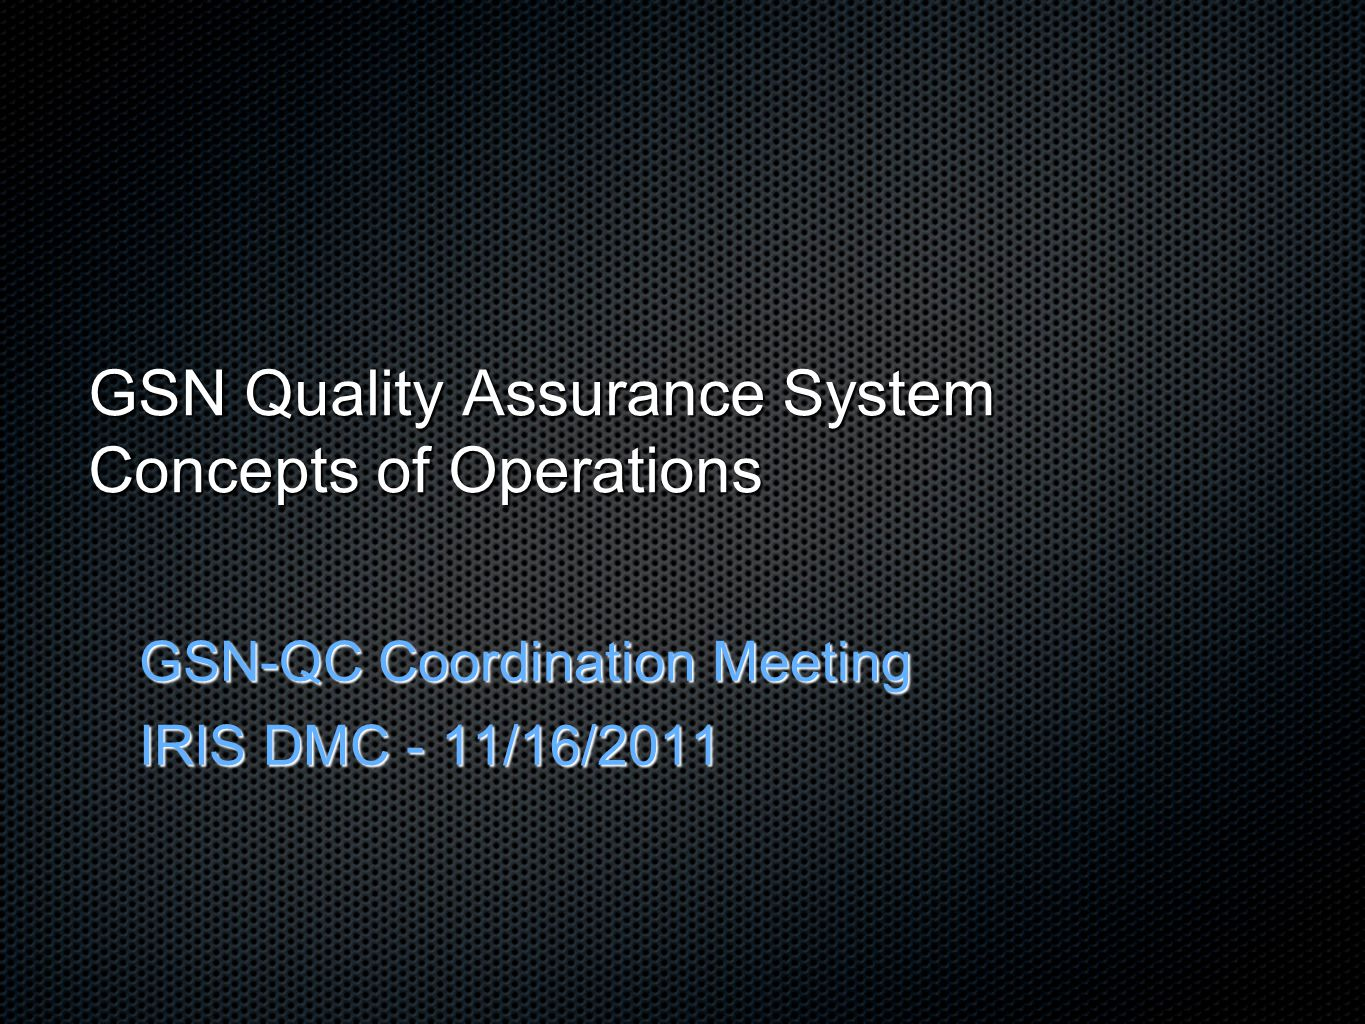 GSN Quality Assurance System Concepts of Operations GSN-QC Coordination Meeting IRIS DMC - 11/16/2011